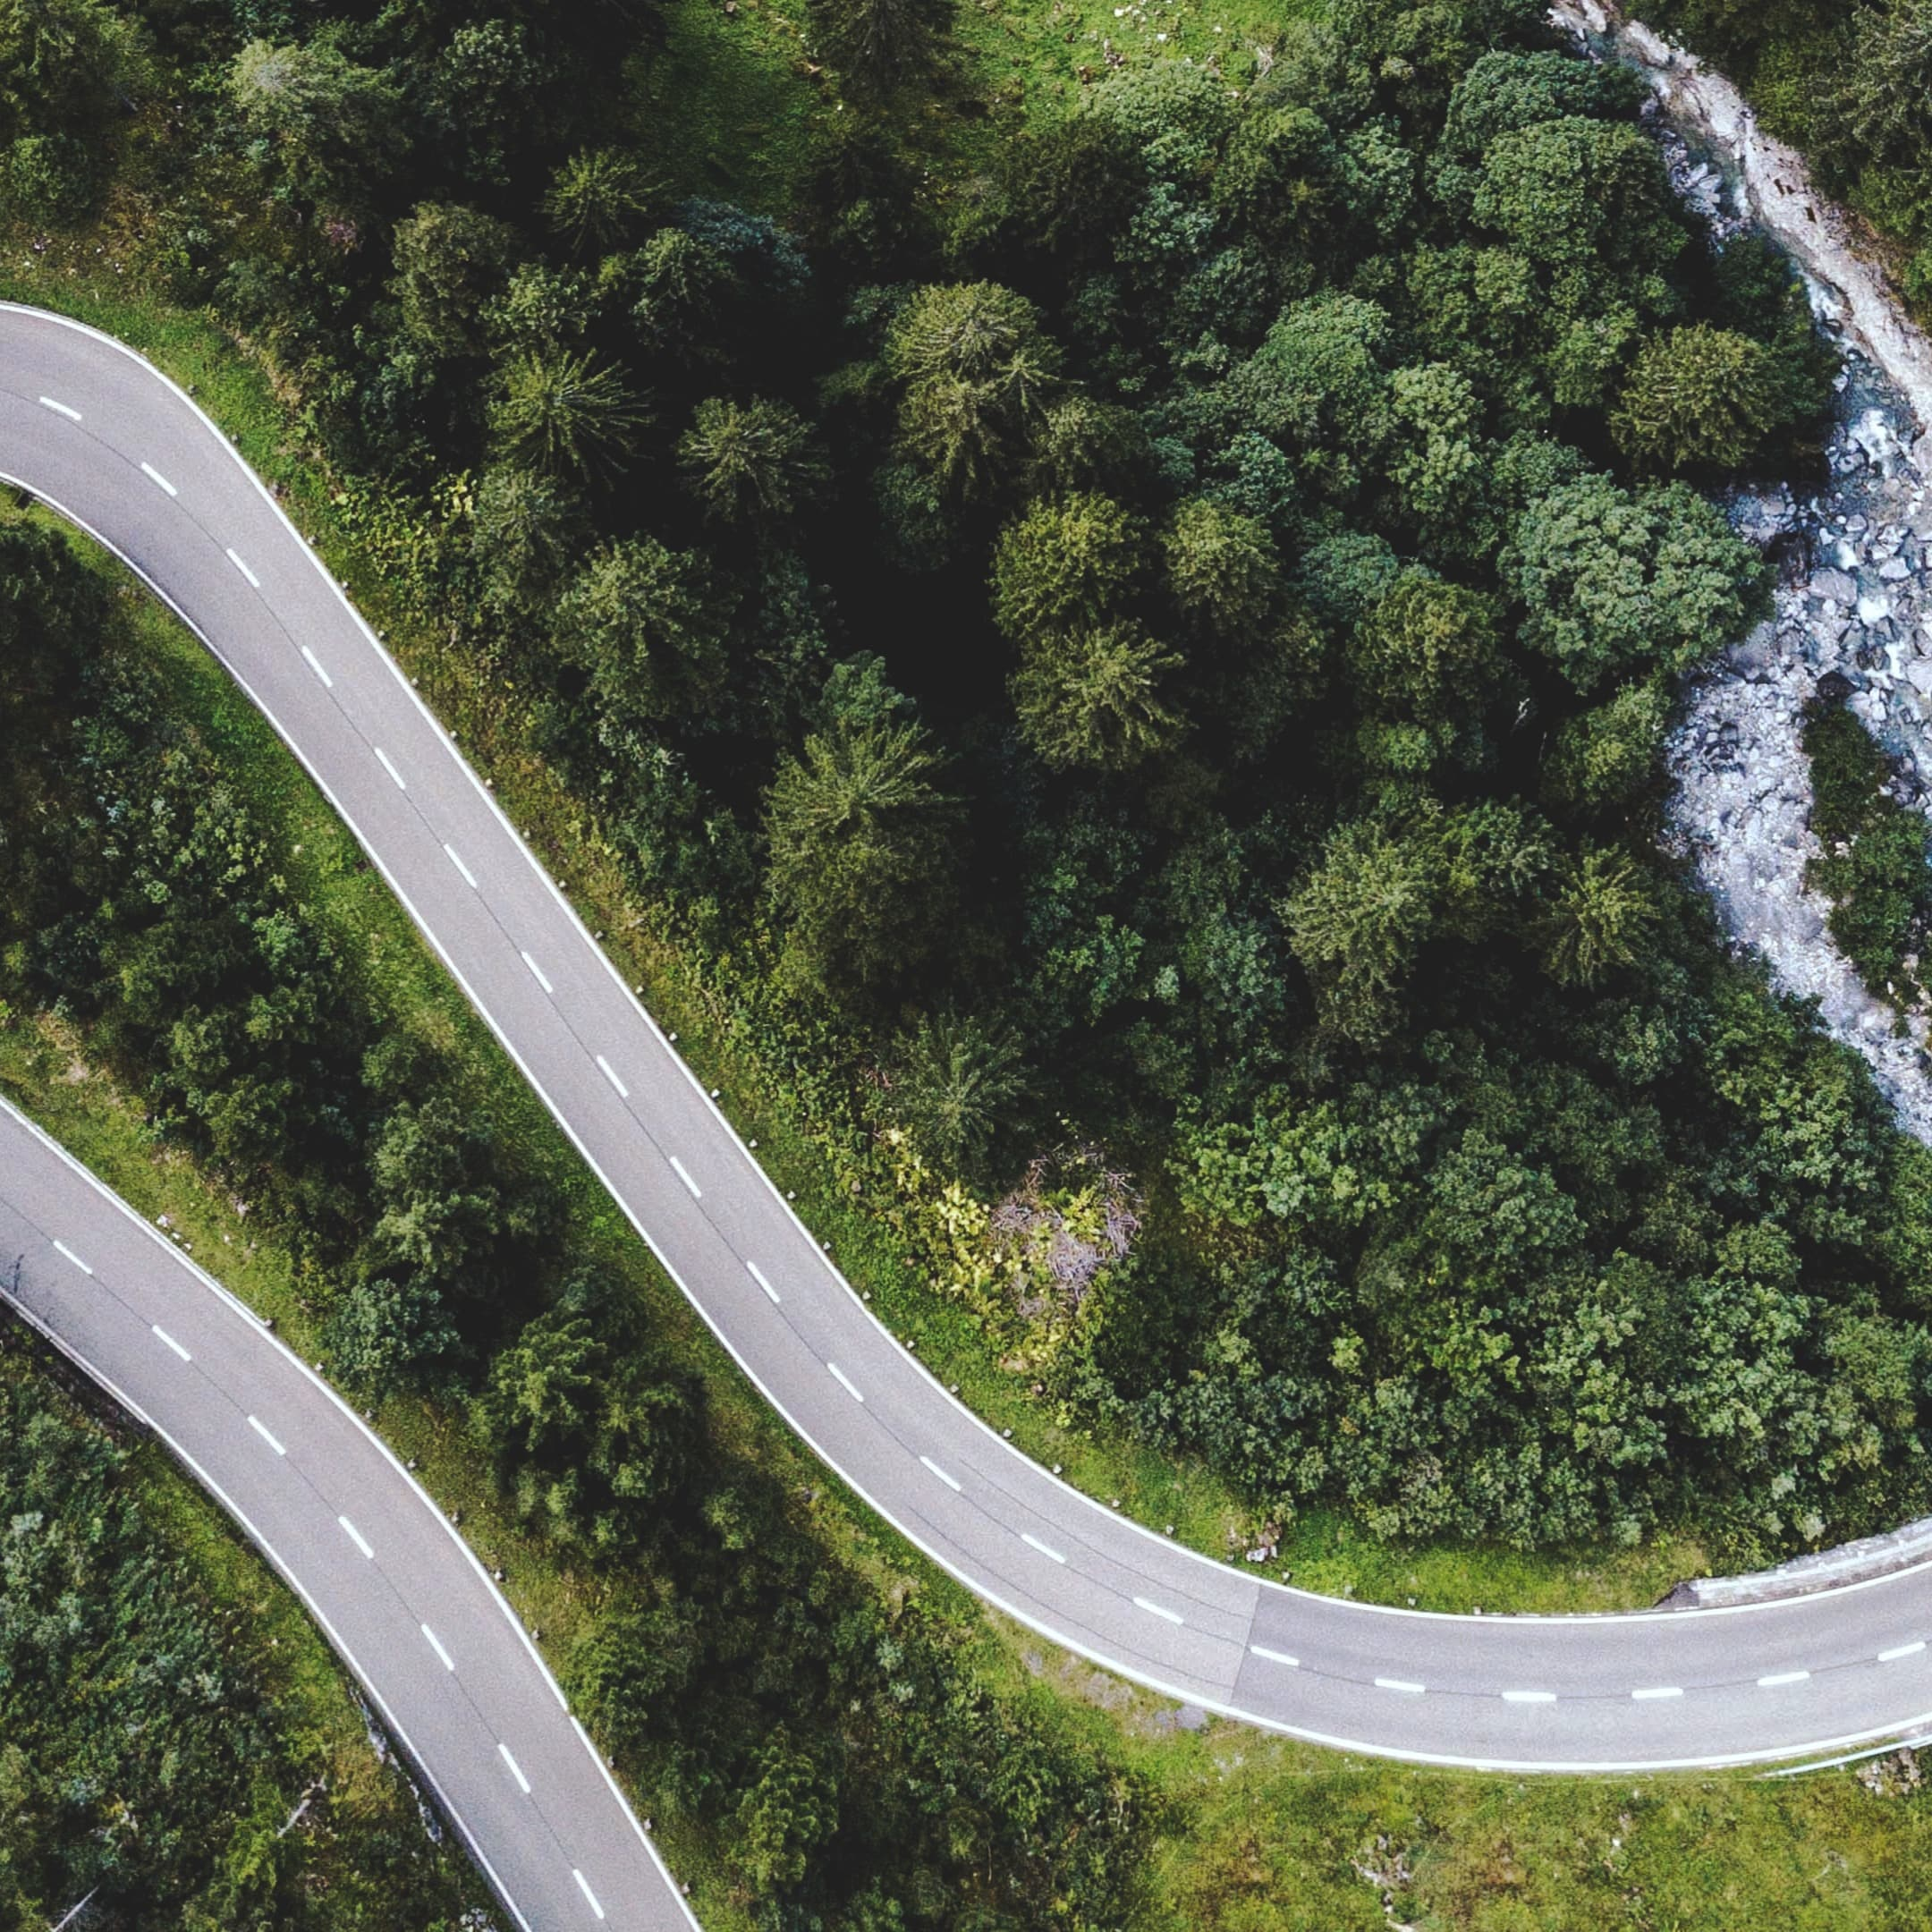 Birdview of an amazing hilly road, discover more roads like this on Road Trips by TomTom